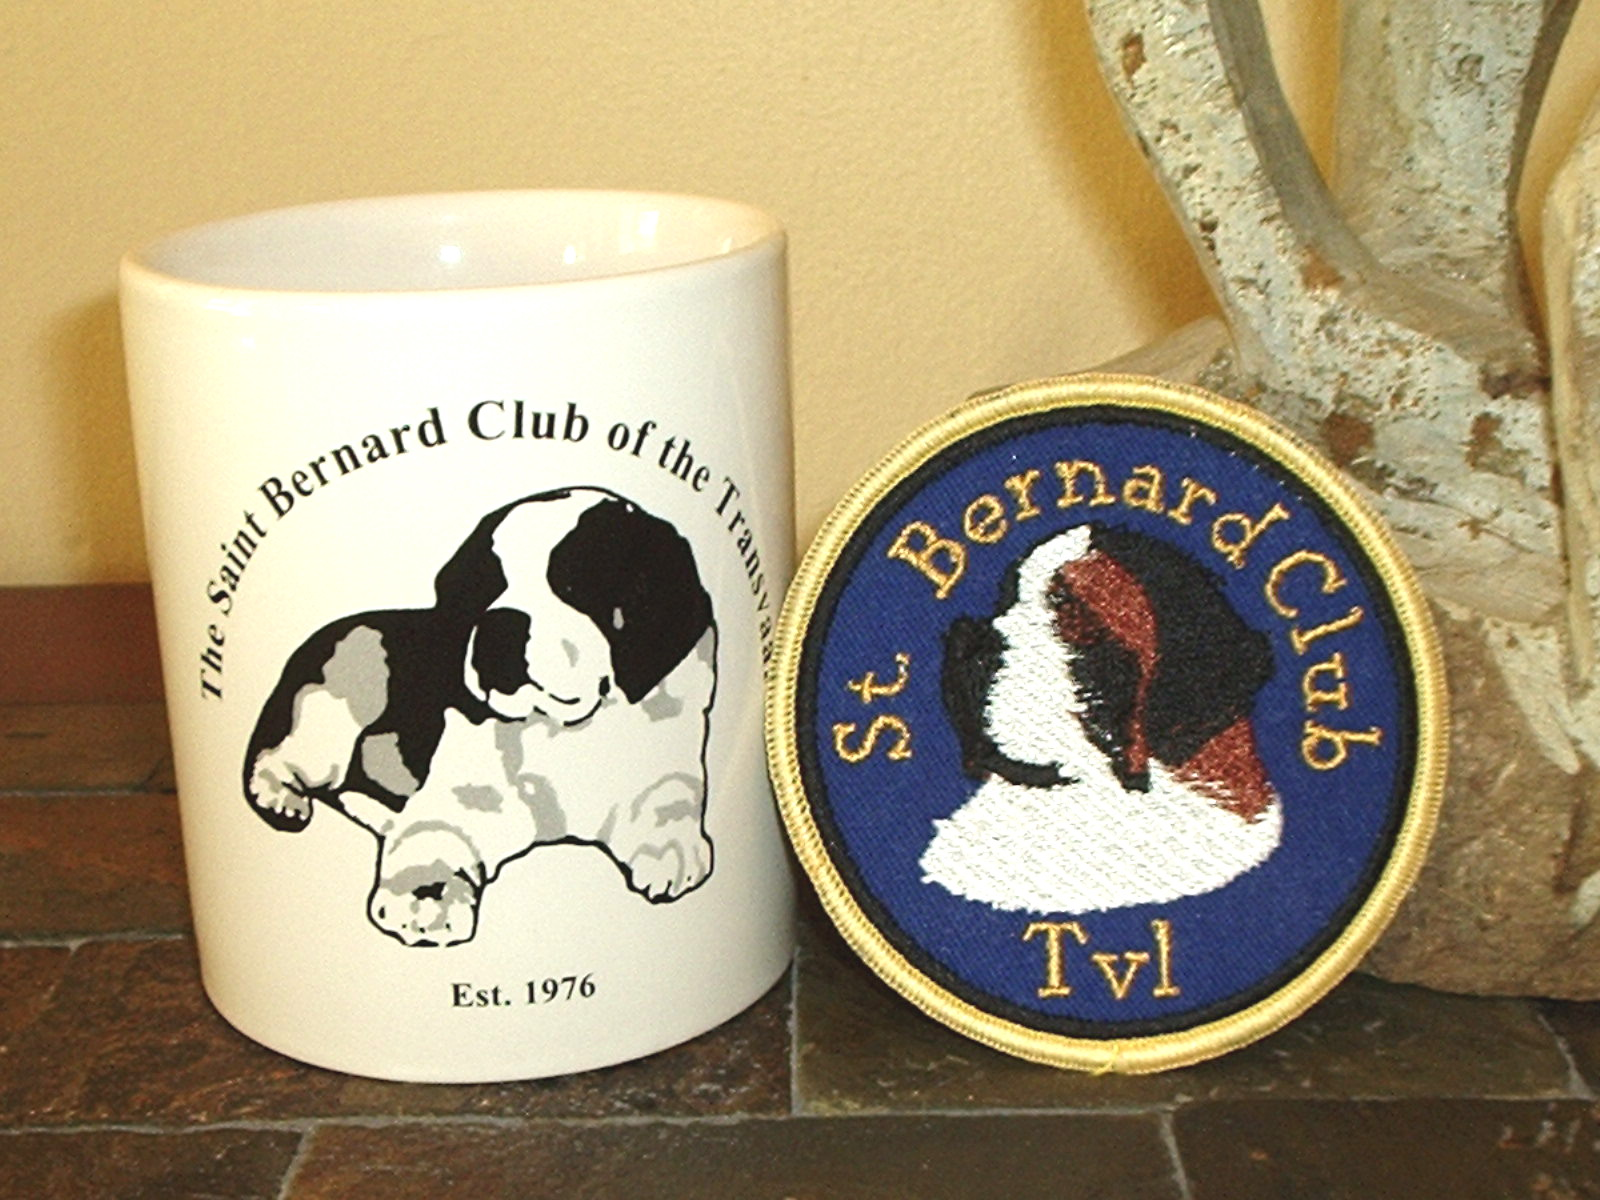 Badge and cup